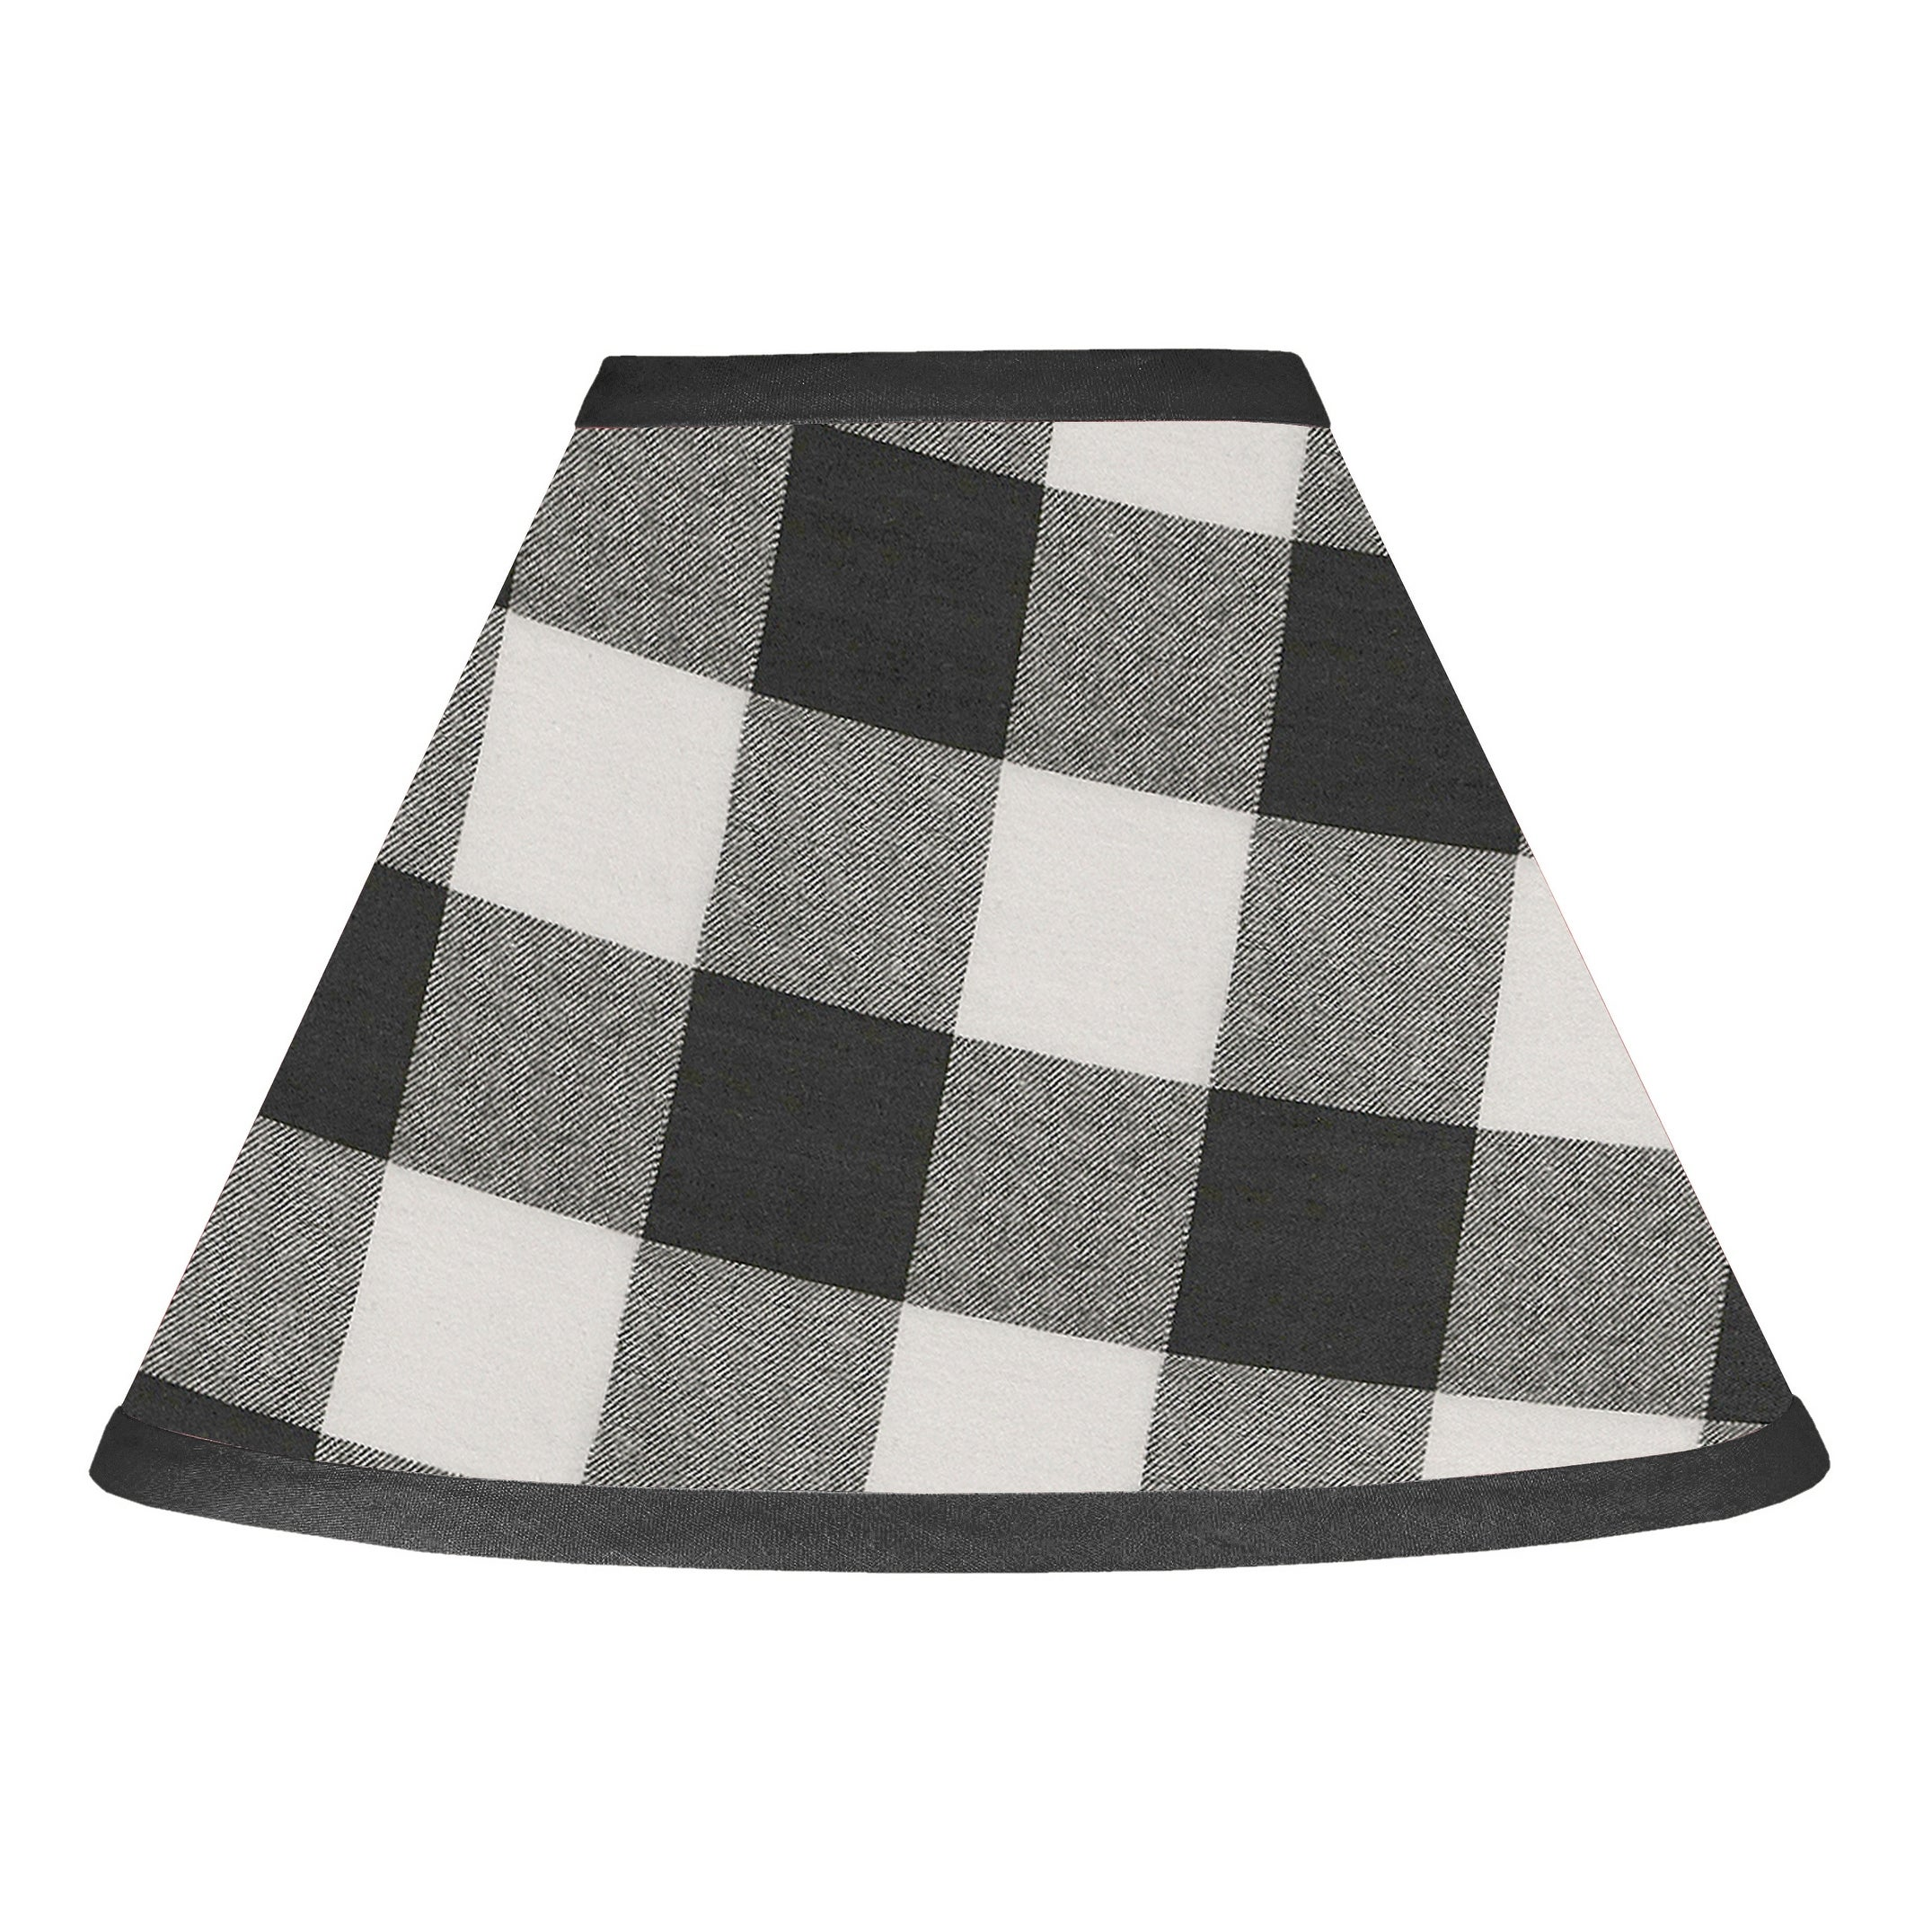 Black And White Buffalo Plaid Collection Lamp Shade Woodland Rustic Country Farmhouse Check Deer Lumberjack Overstock 31459724